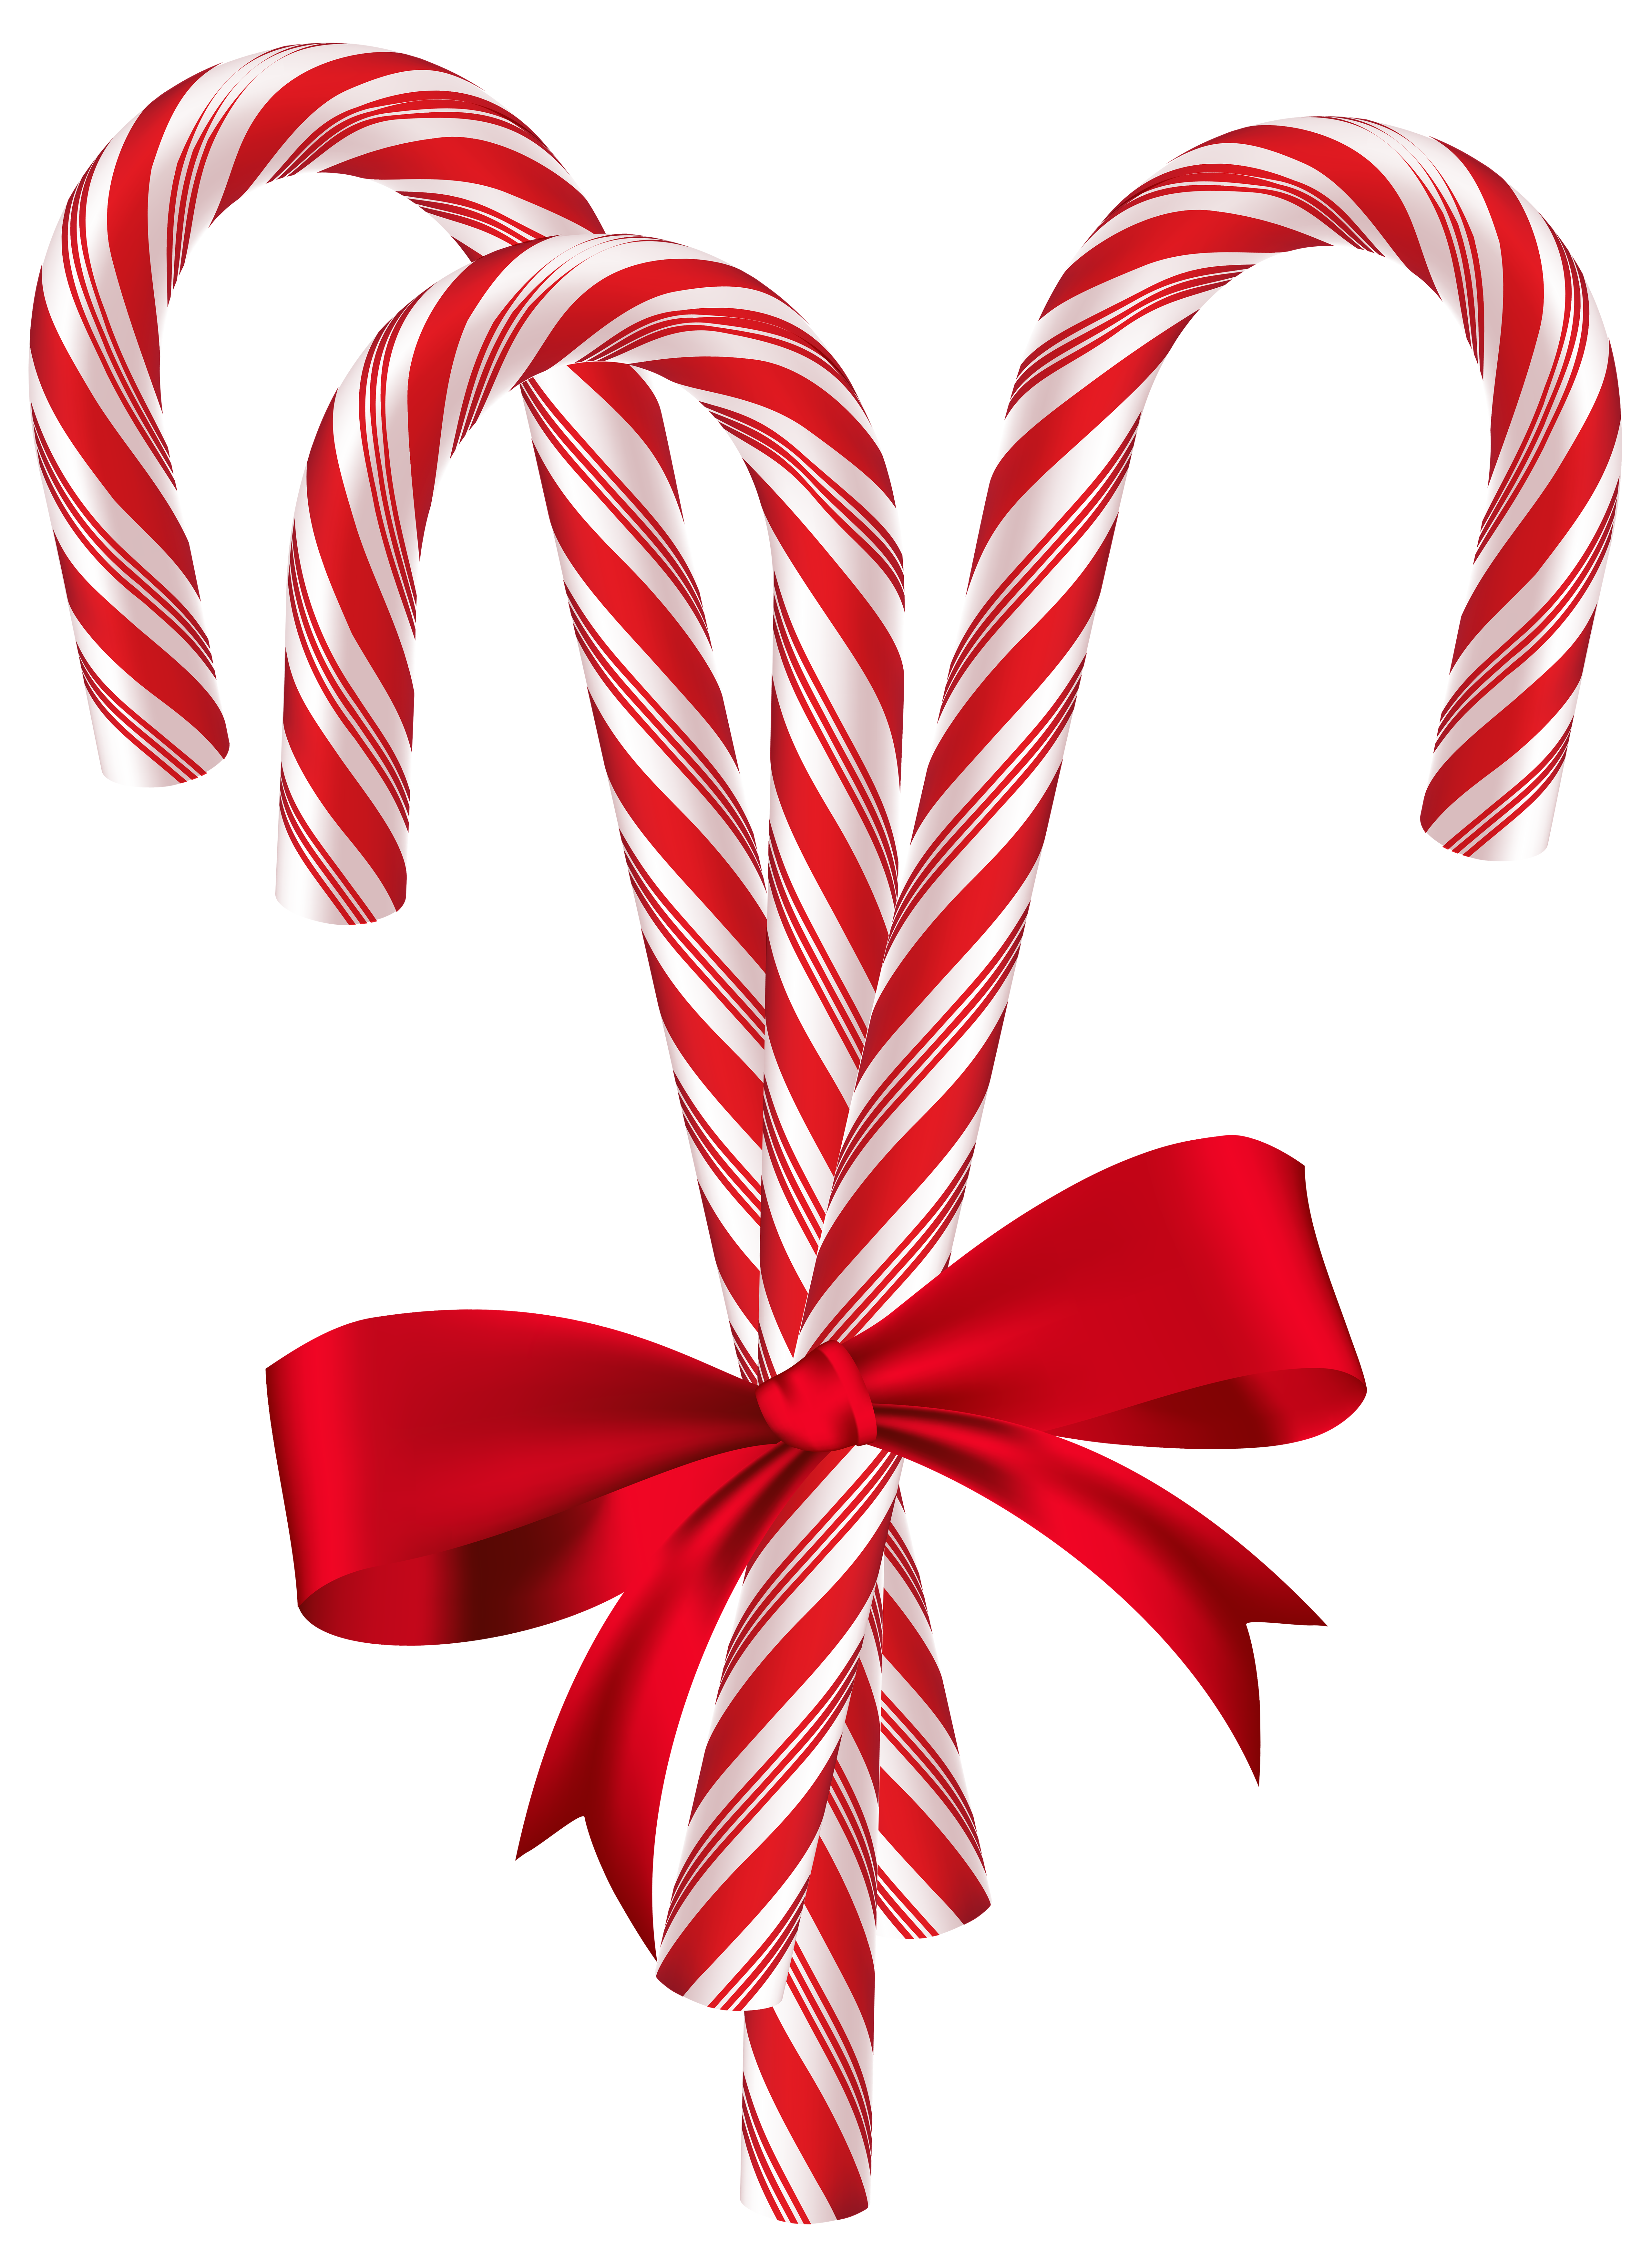 Candy Cane clipart transparent background With  Gallery Image Canes